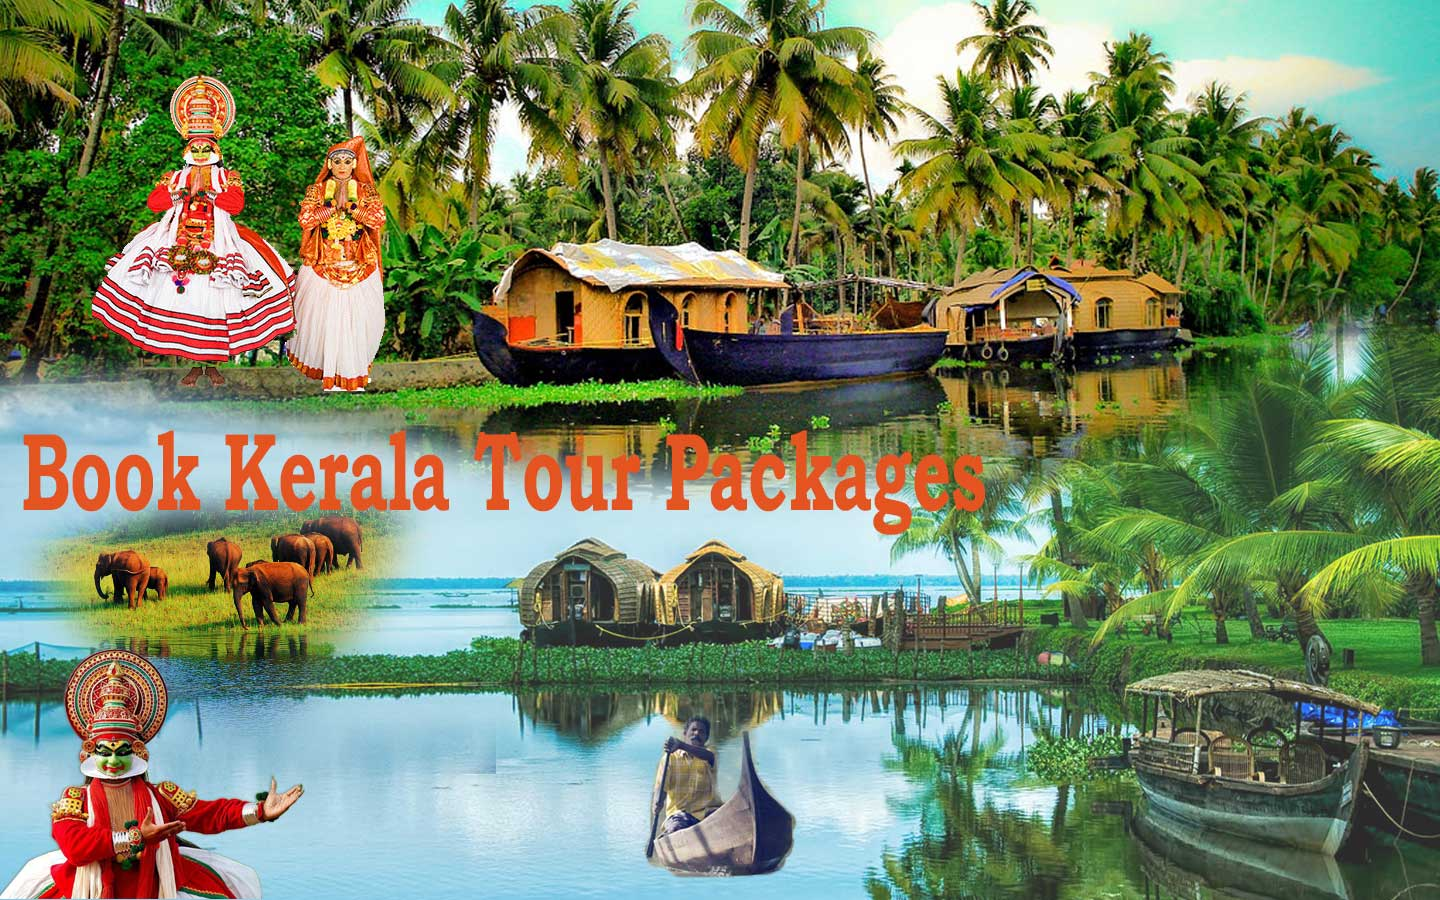 Book Kerala Package at Travel IQ